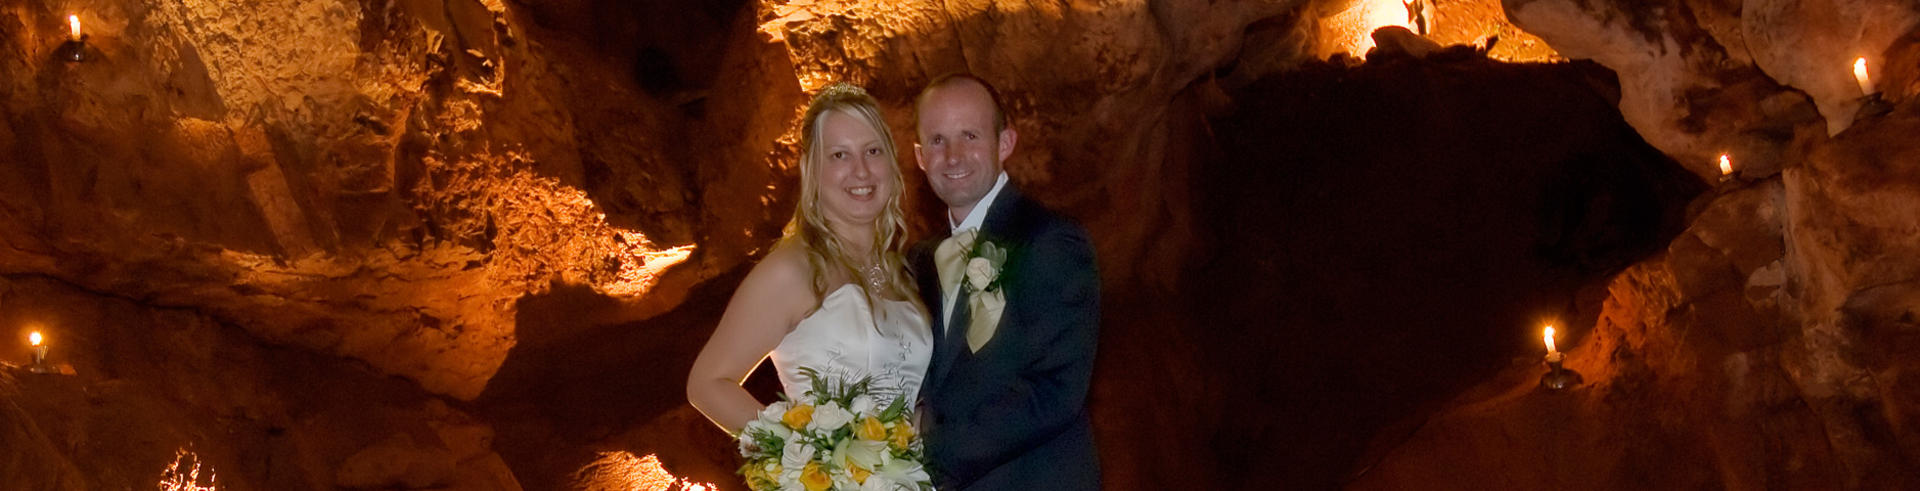 Weddings at Kents Cavern